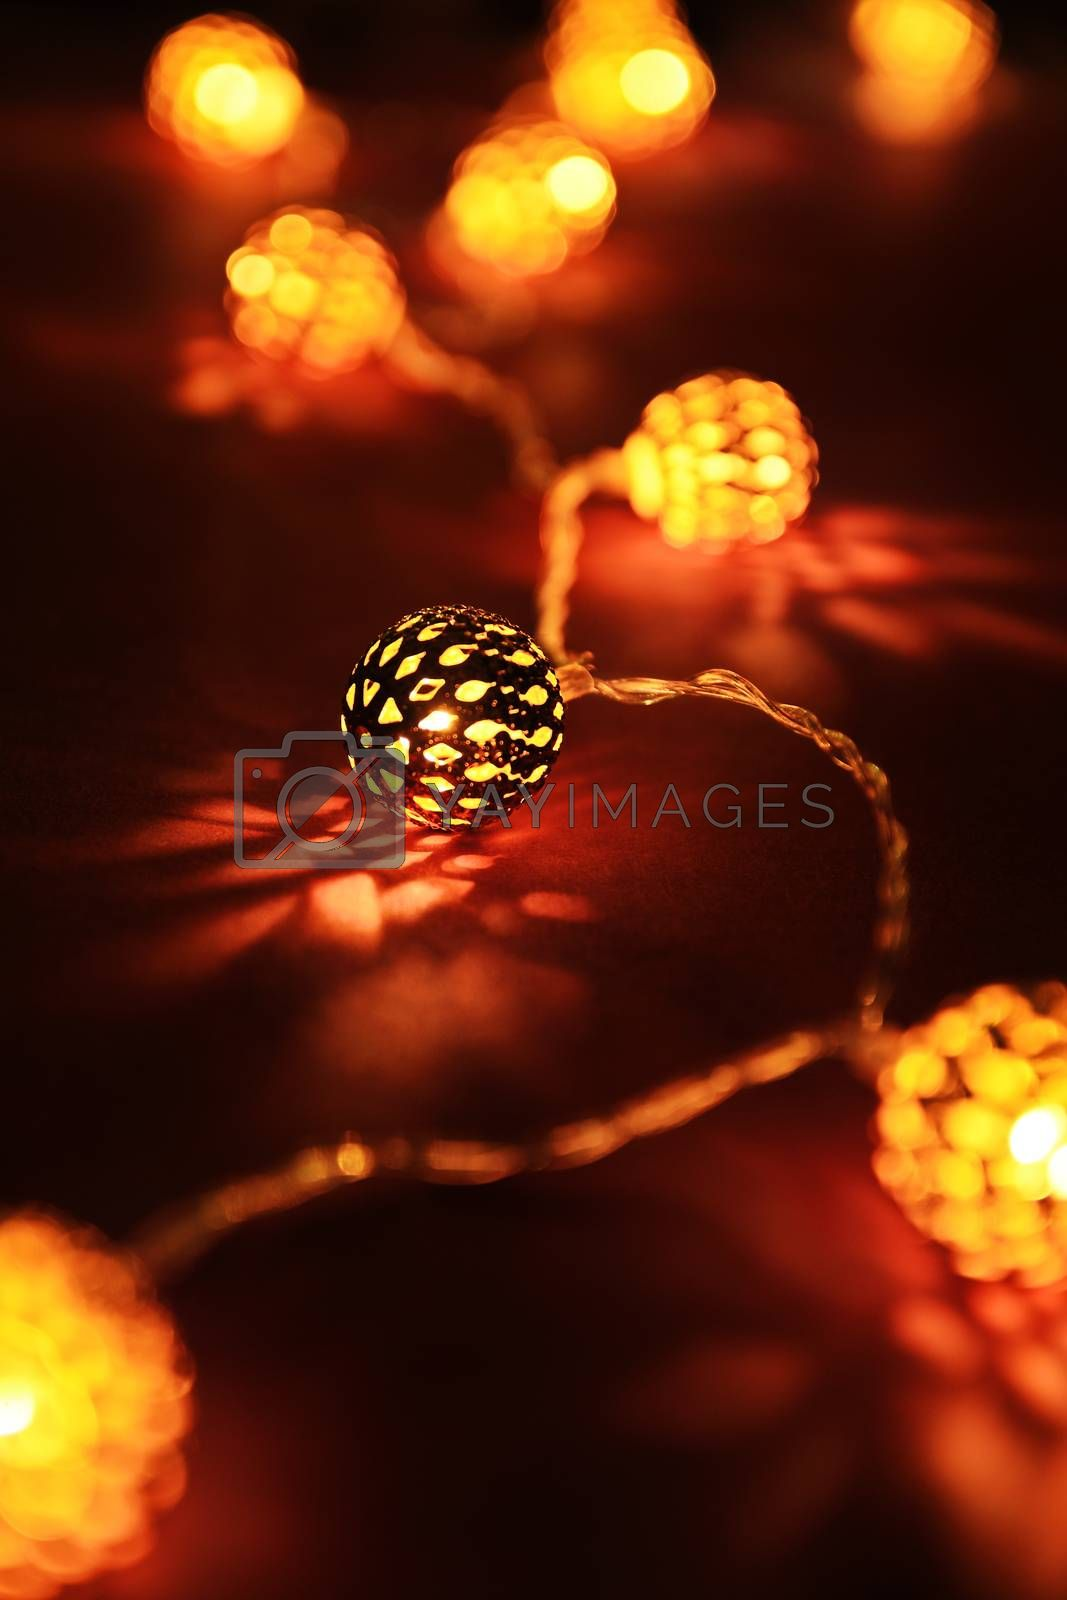 Close up shot of golden blurred Christmas lights making cozy and romantic atmosphere. Festive background with blurry lights.